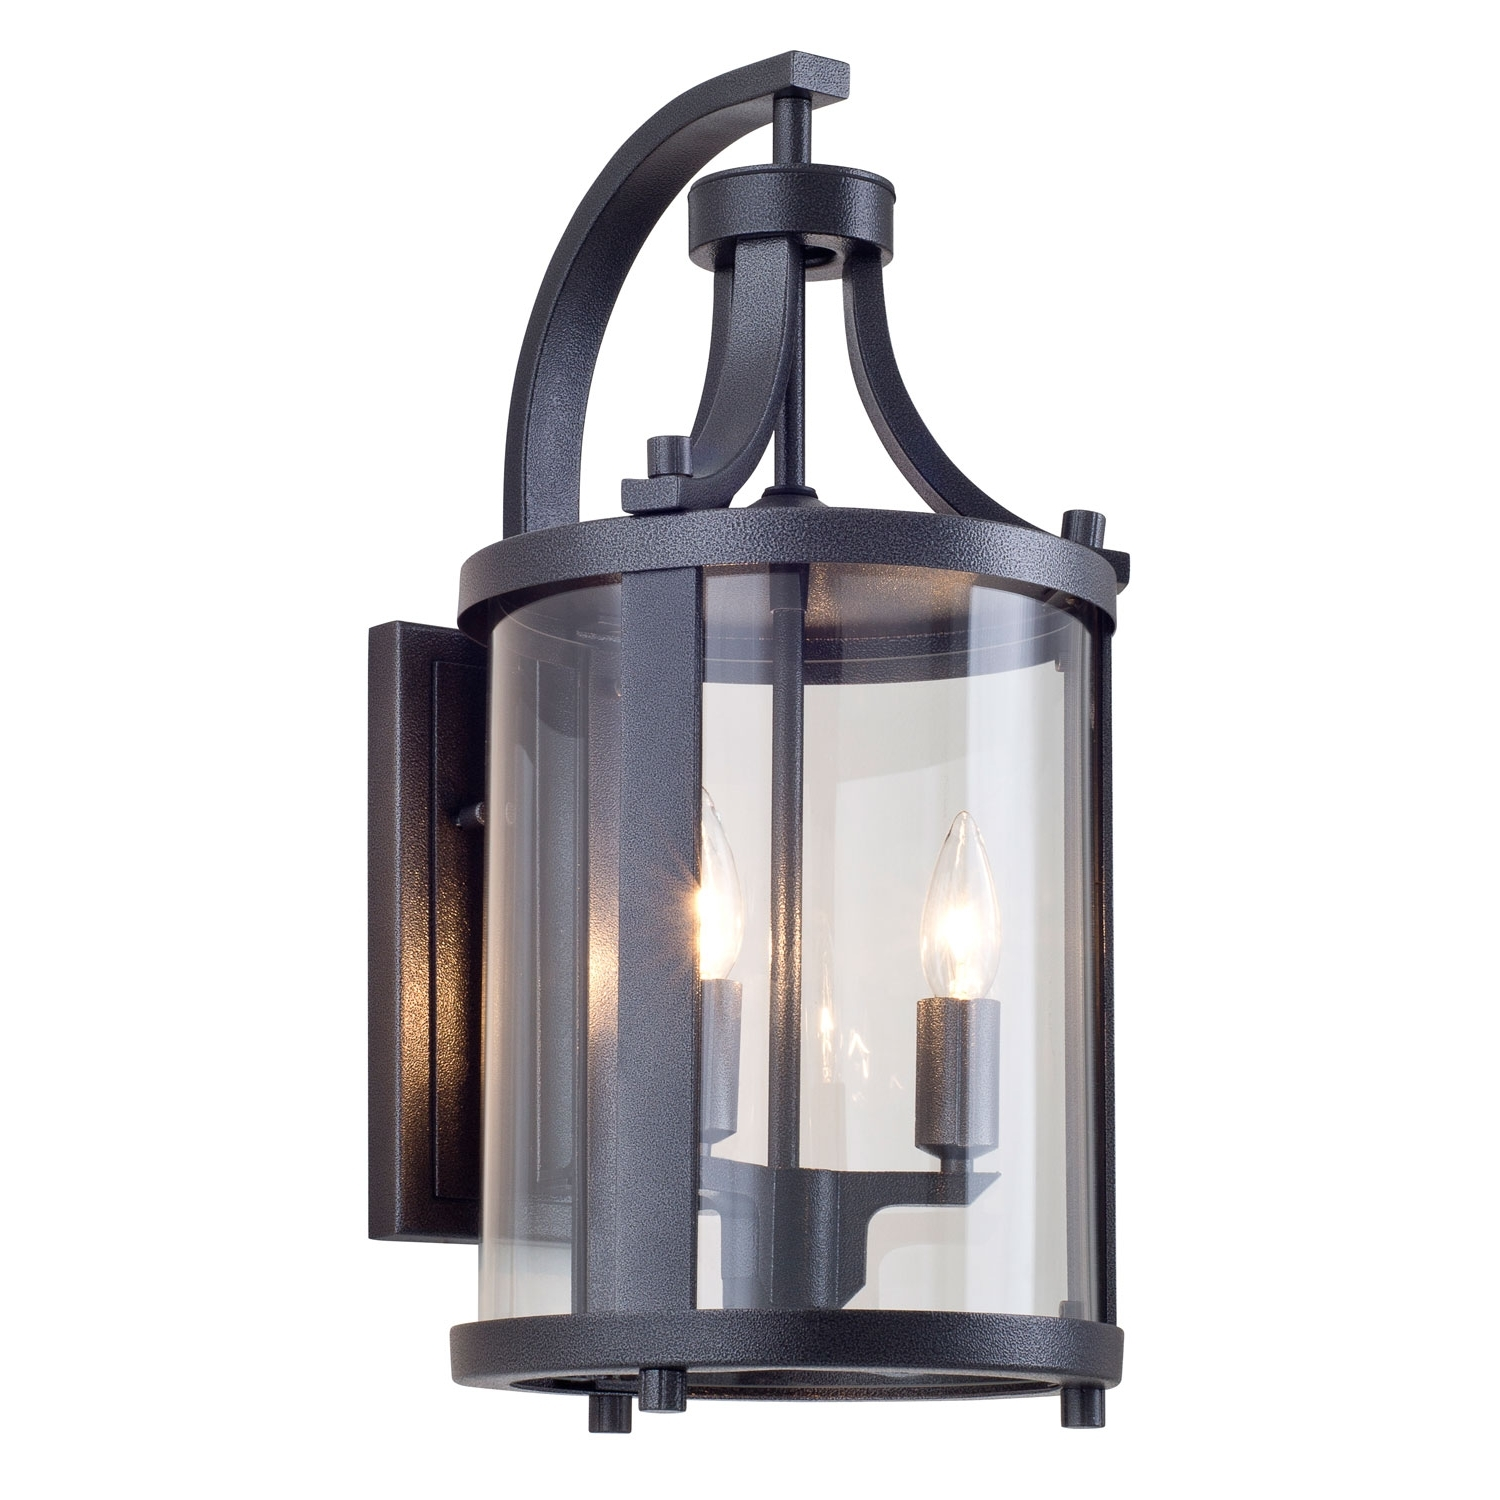 Black Outdoor Wall Lighting In Well Known Niagara Outdoor Hammered Black Two Light Outdoor Sconce Dvi Lighting (View 18 of 20)